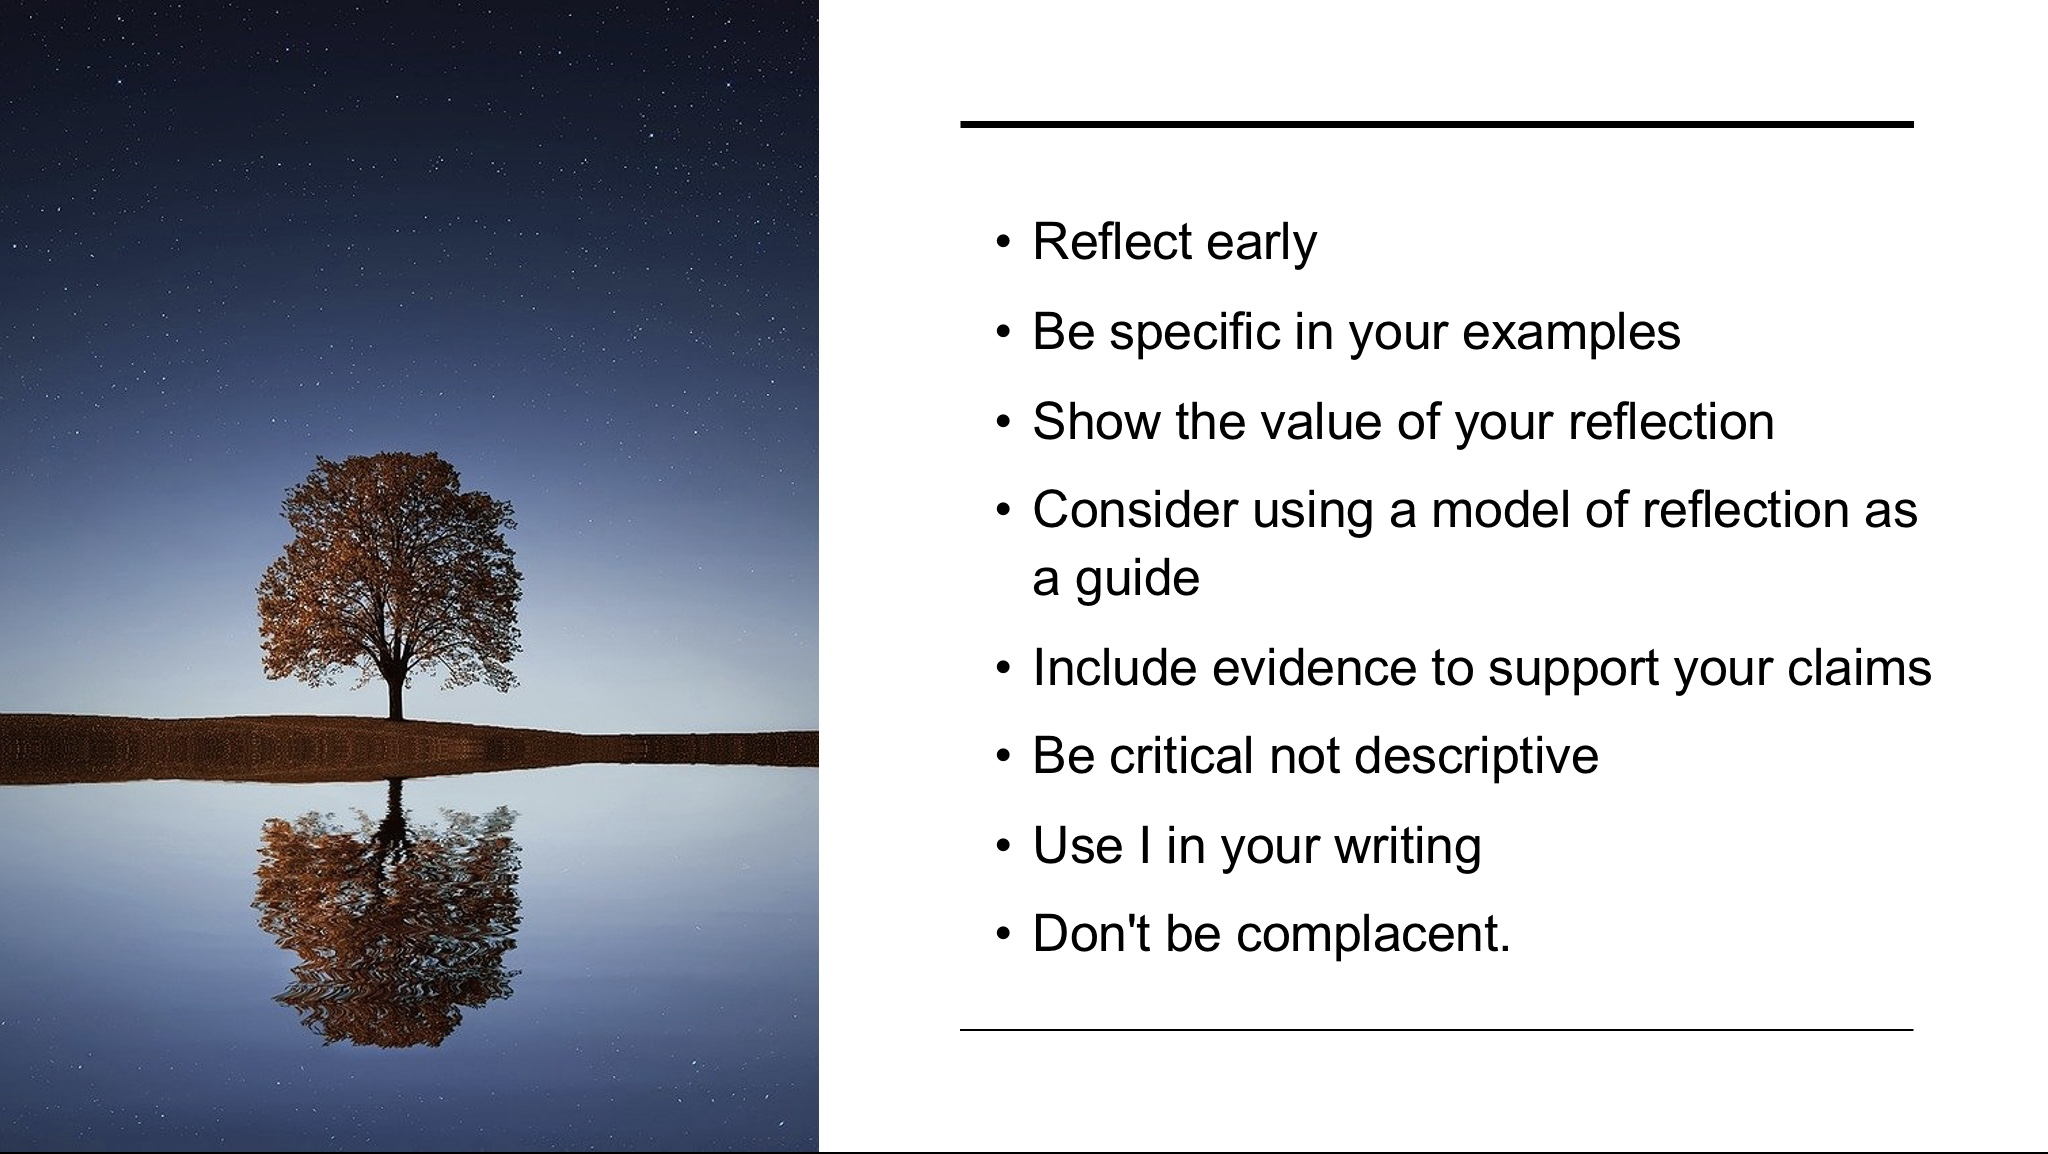 Reflective writing top tips